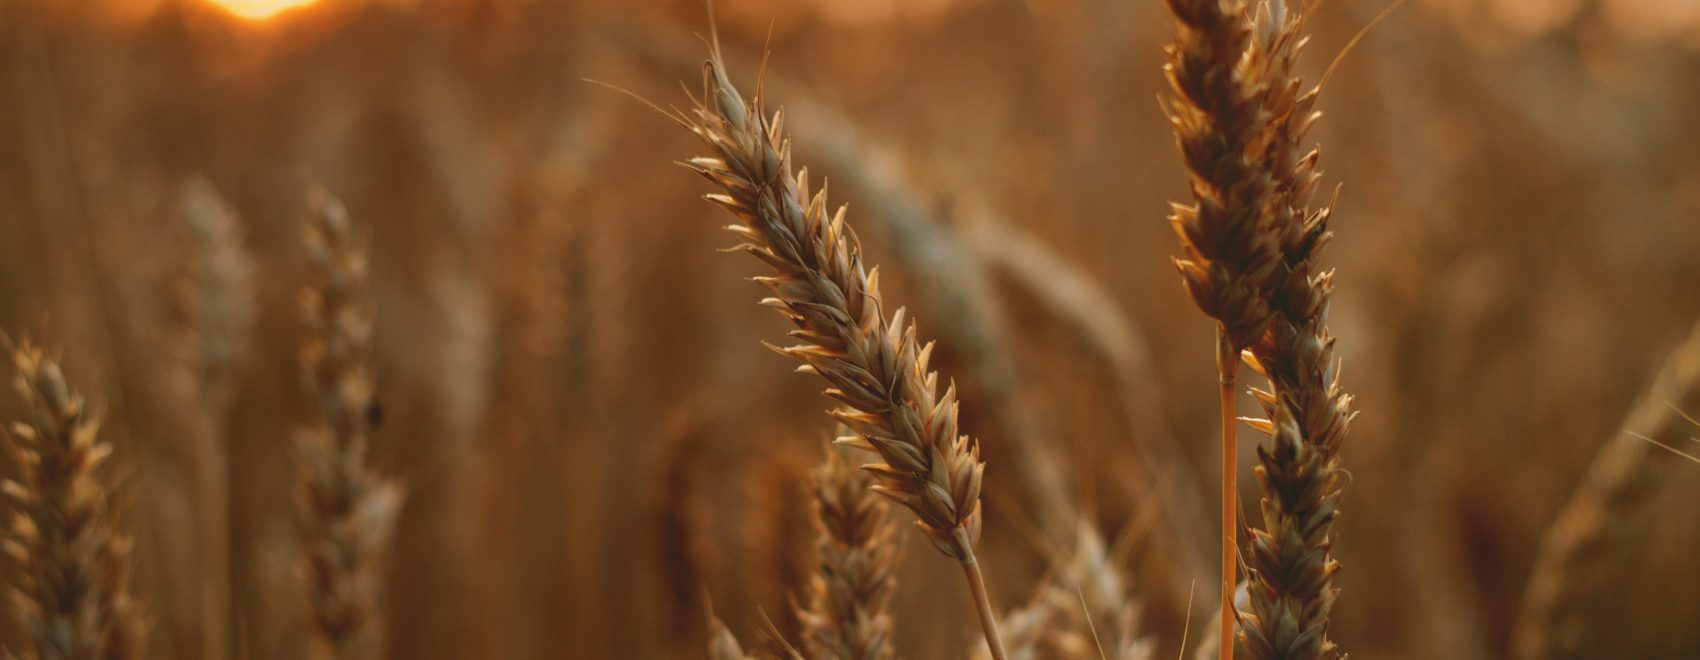 Wheat crop closeup